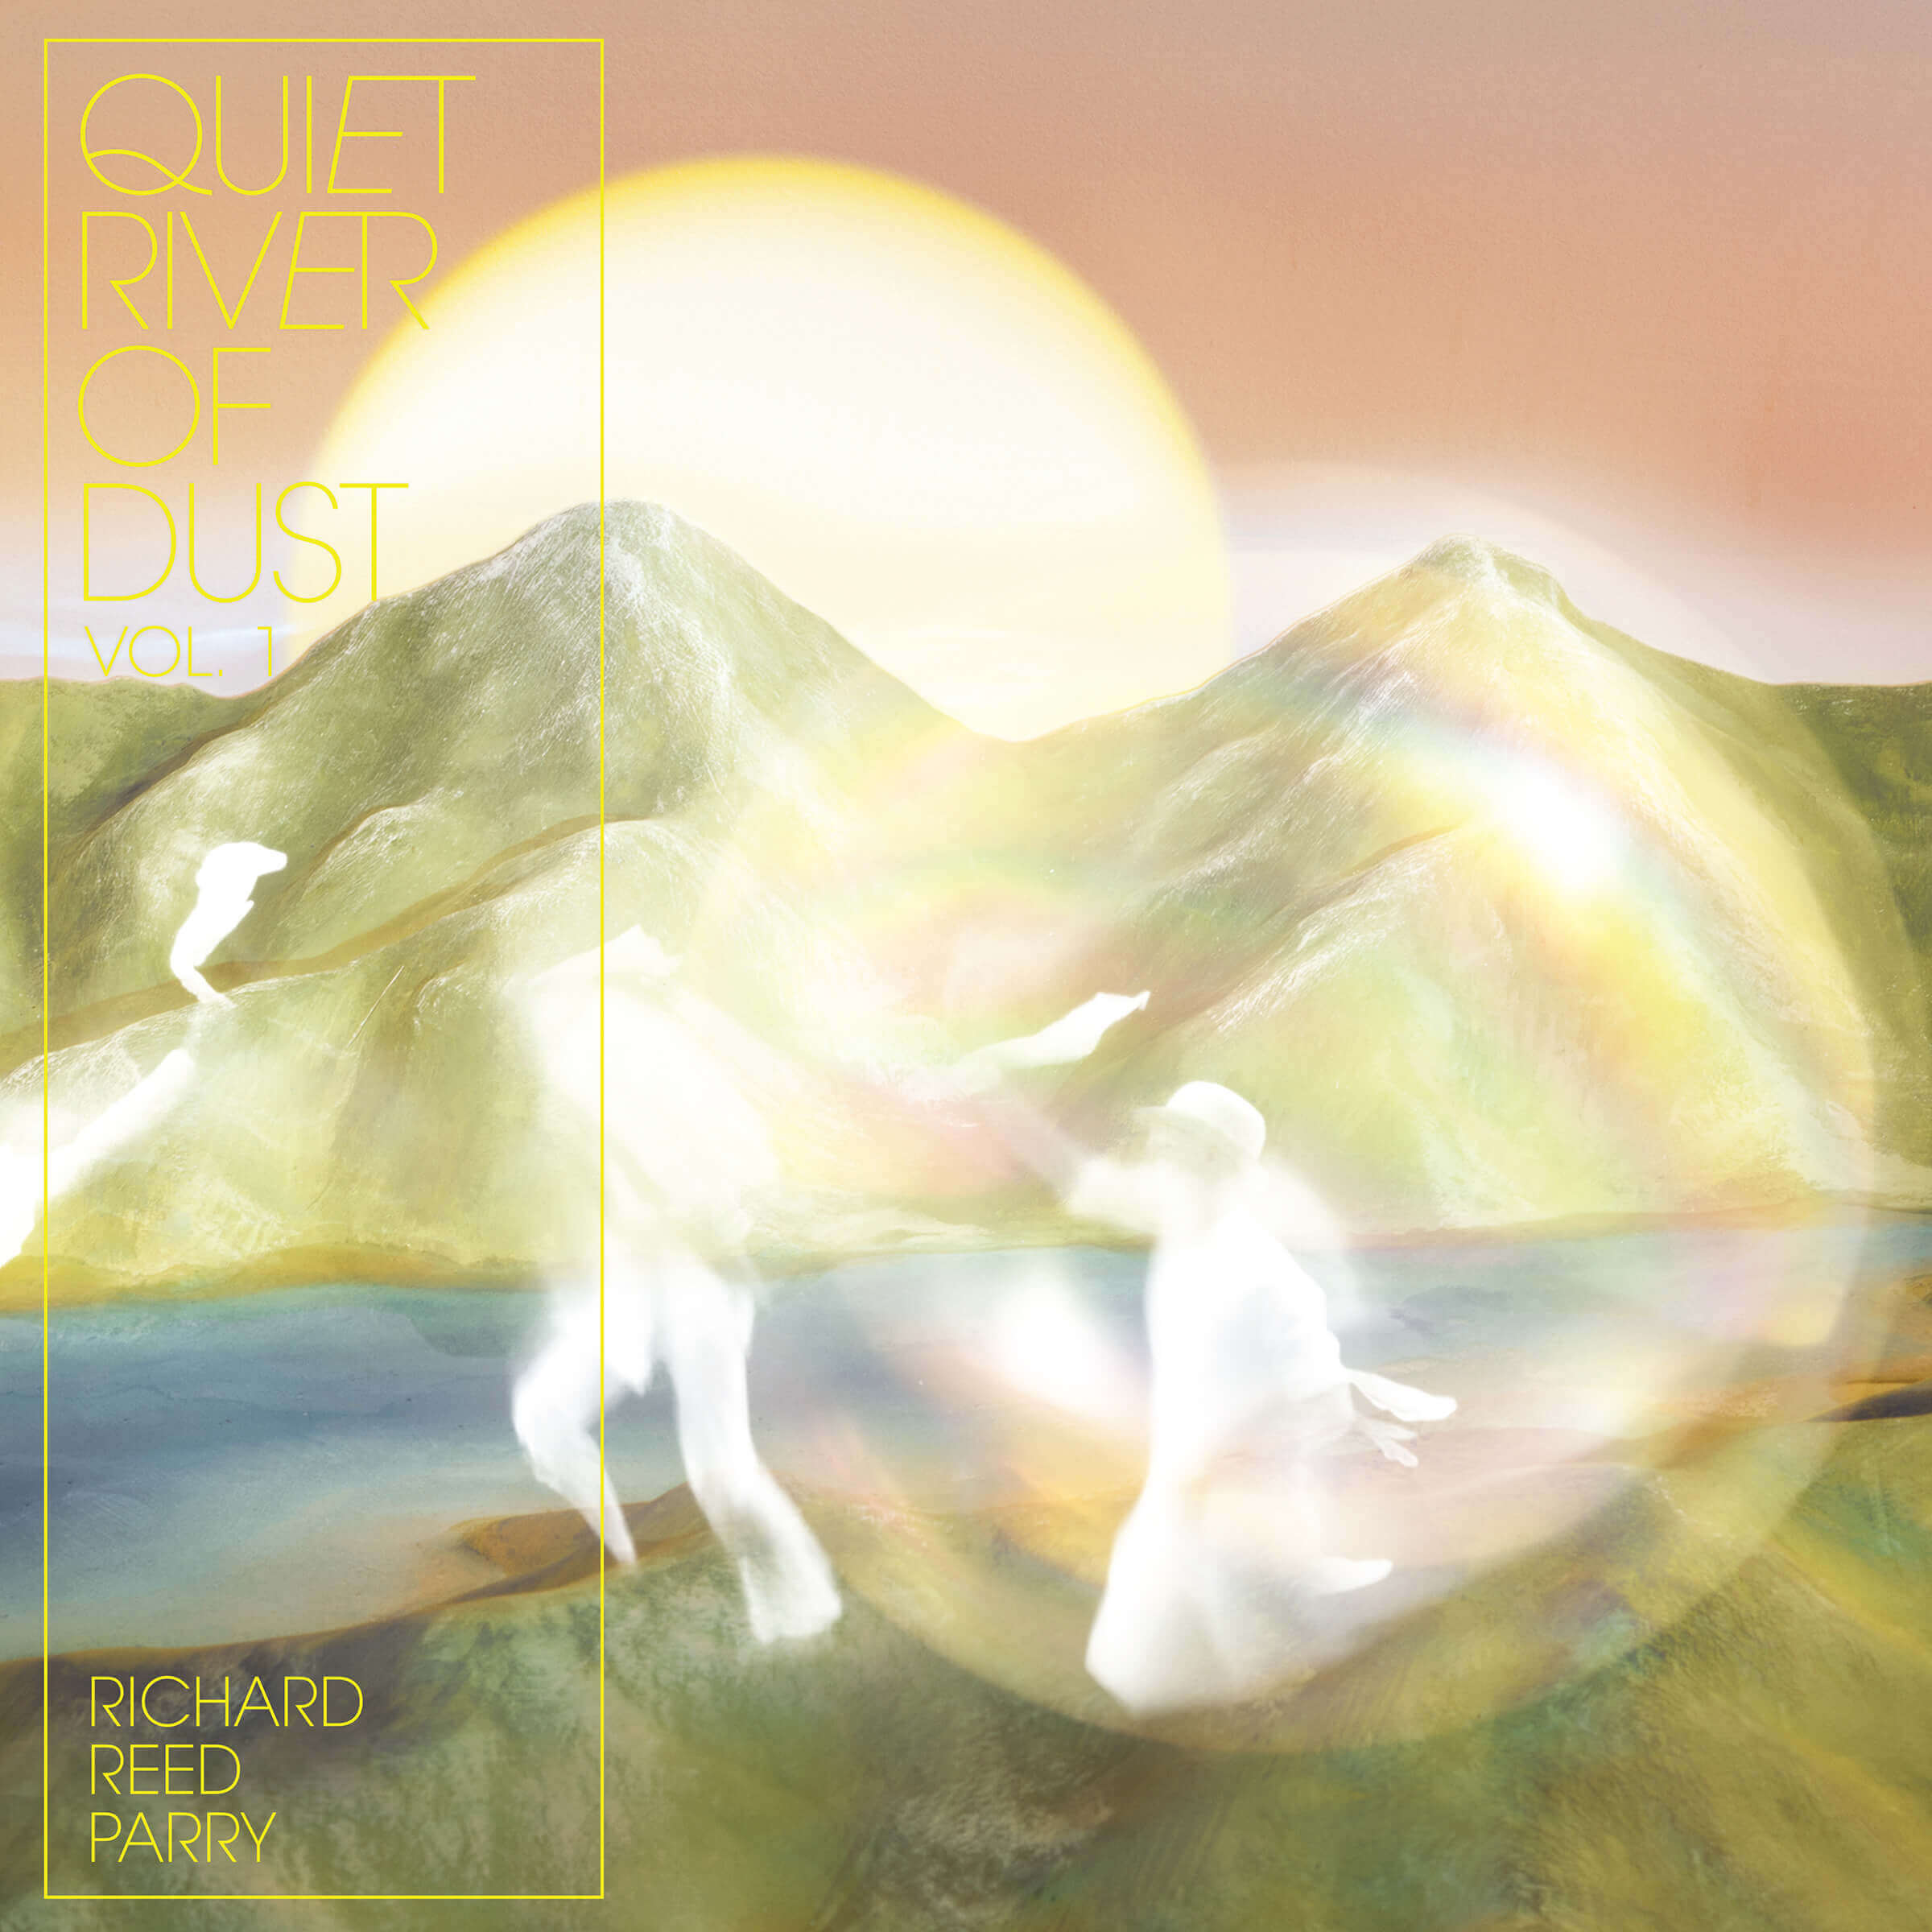 Quiet River Of Dust Vol 1: This Side of the River